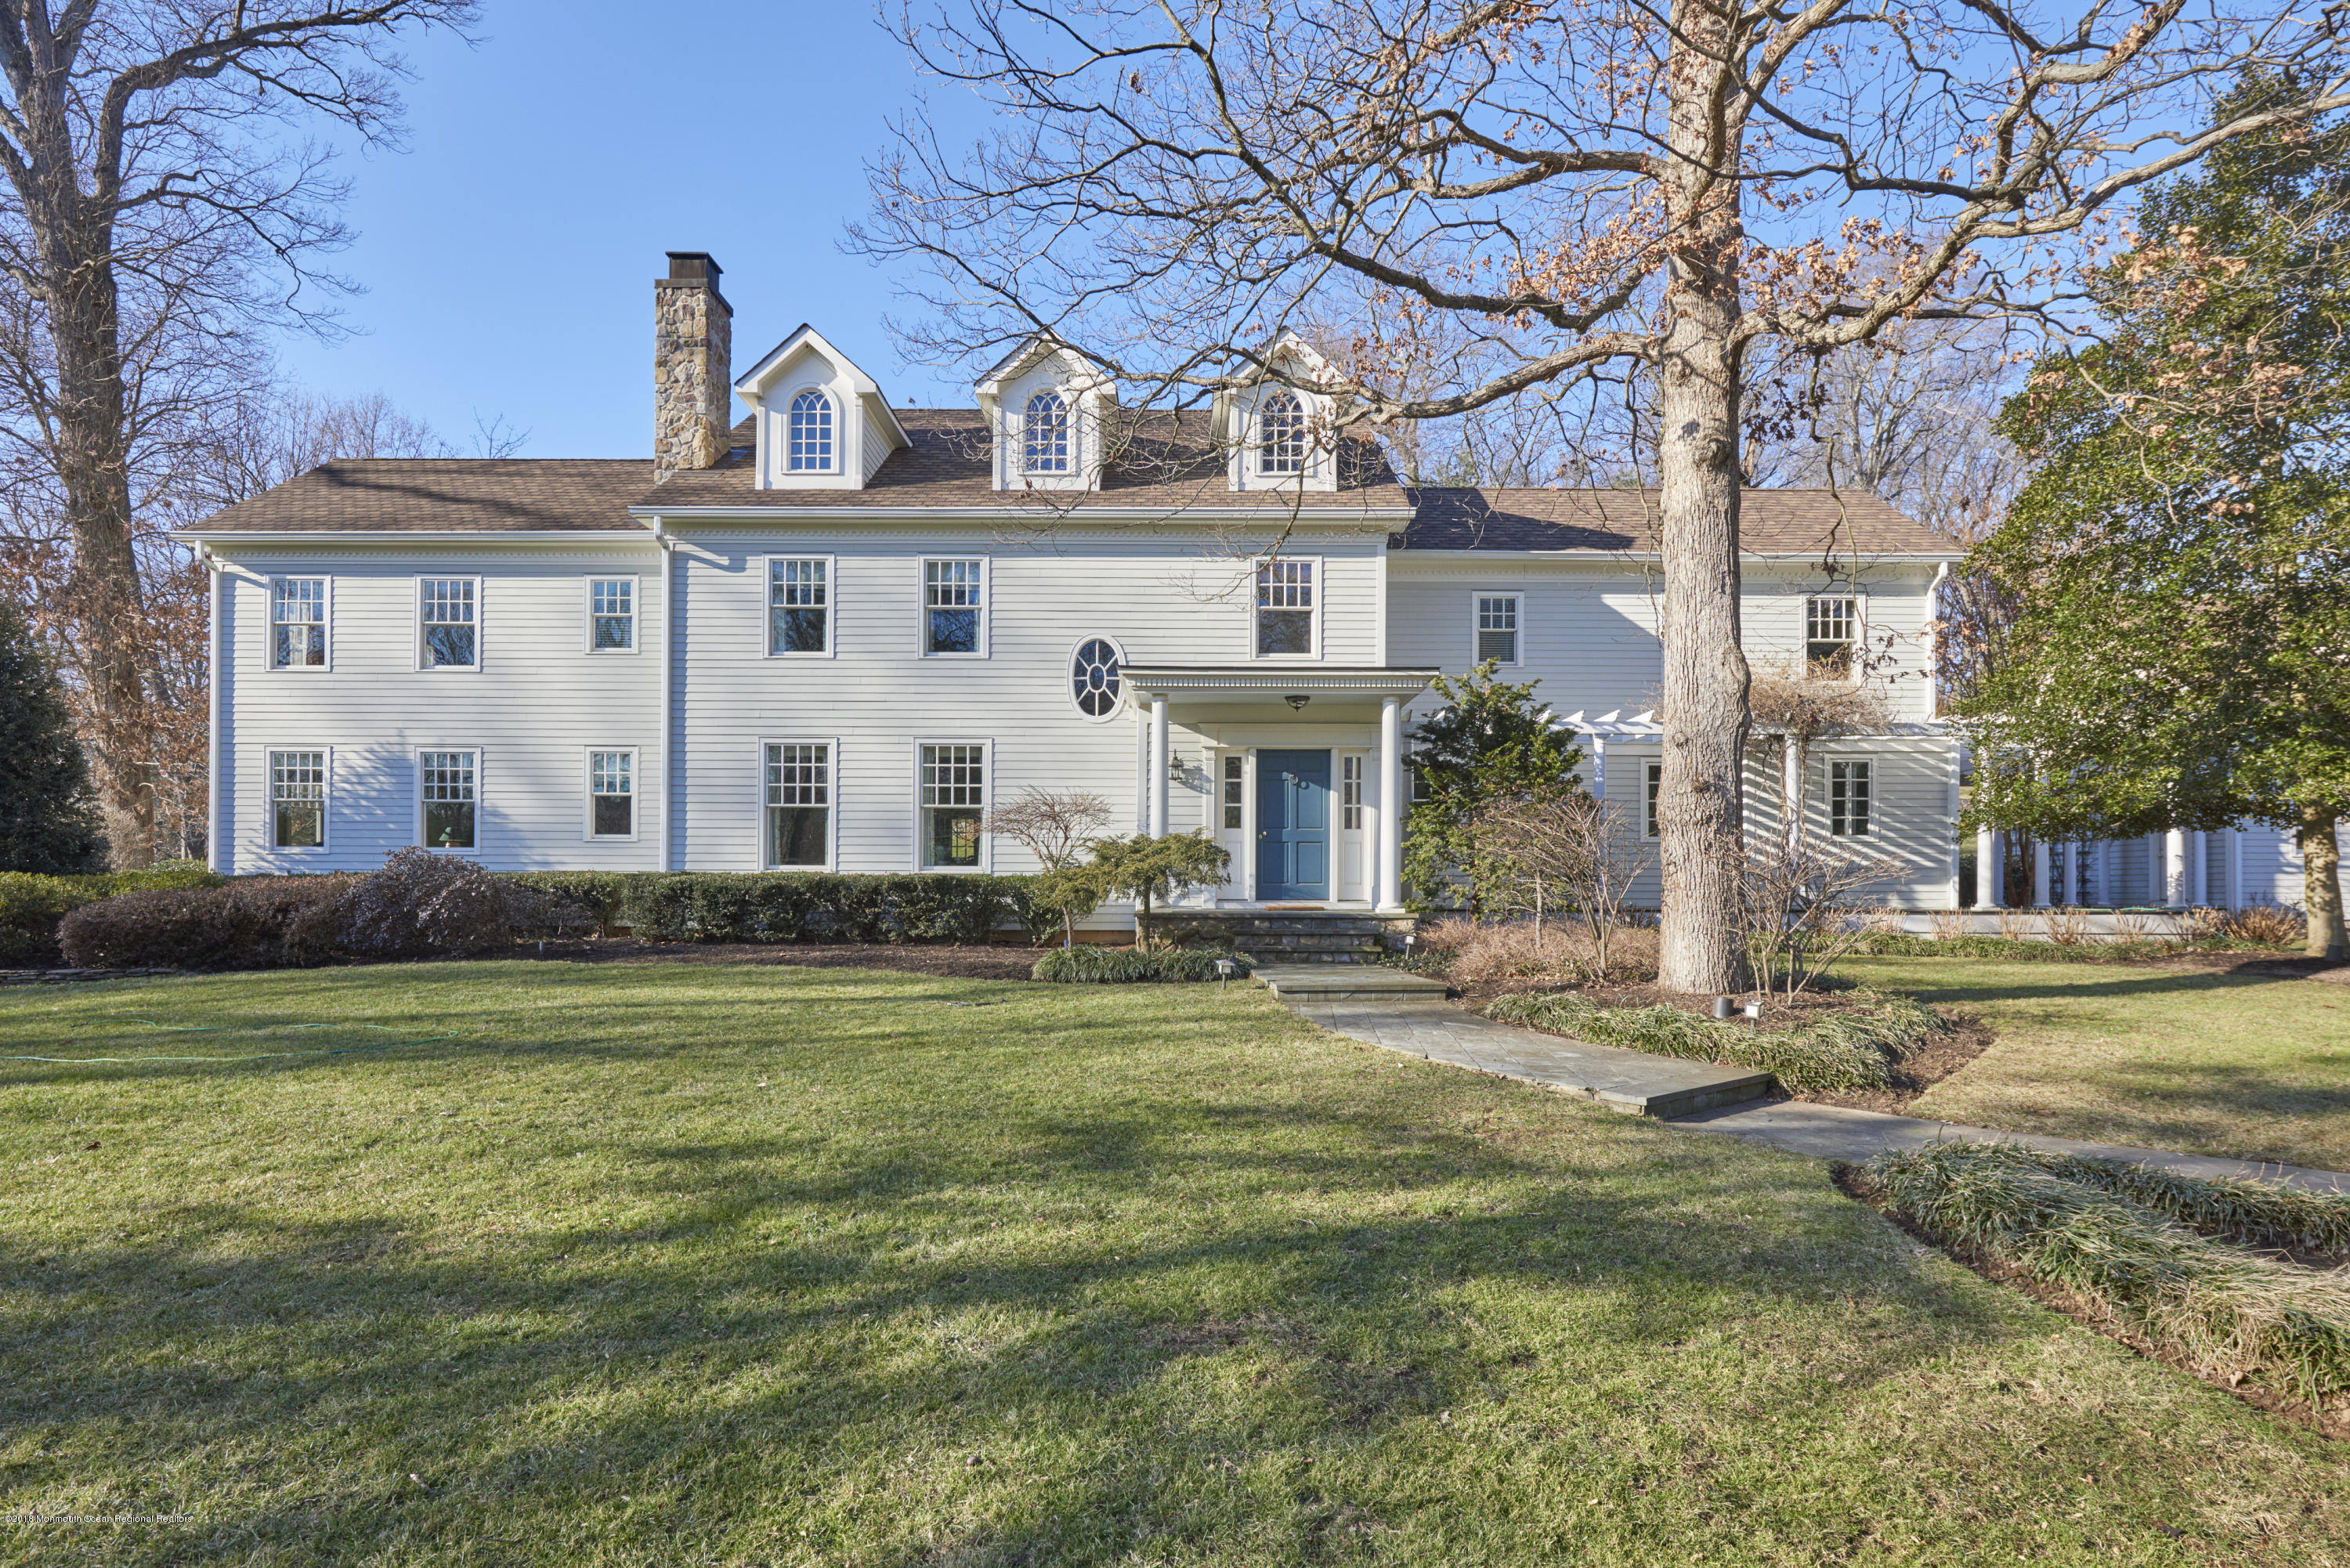 10 EDGEWOOD ROAD, RUMSON, NJ 07760